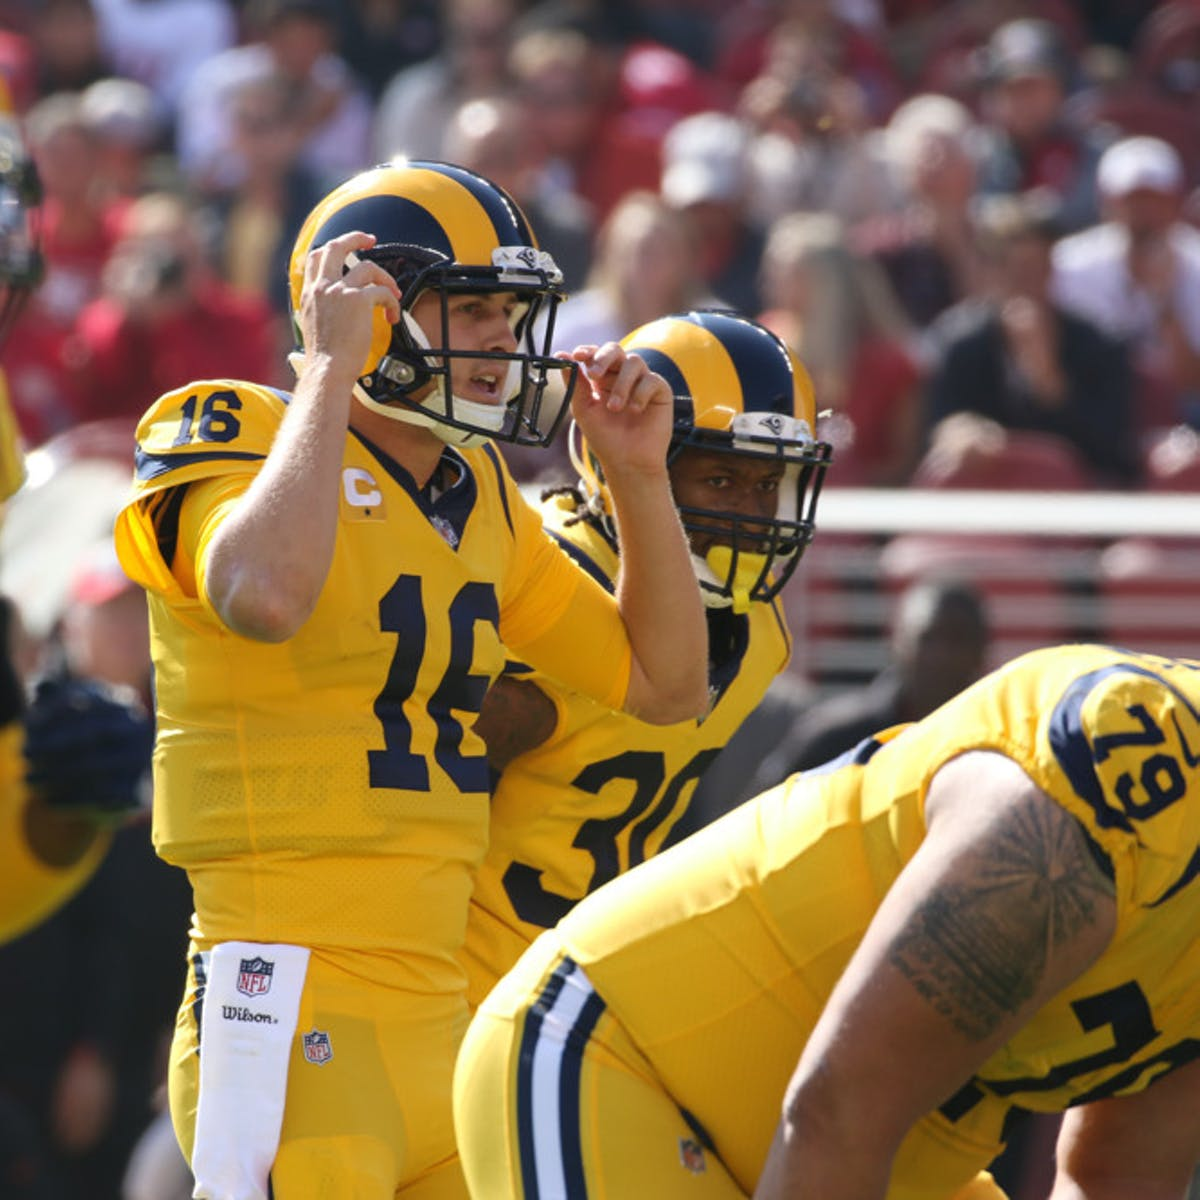 Rams vs  Bears: Preview and Prediction for Big NFC Match-Up